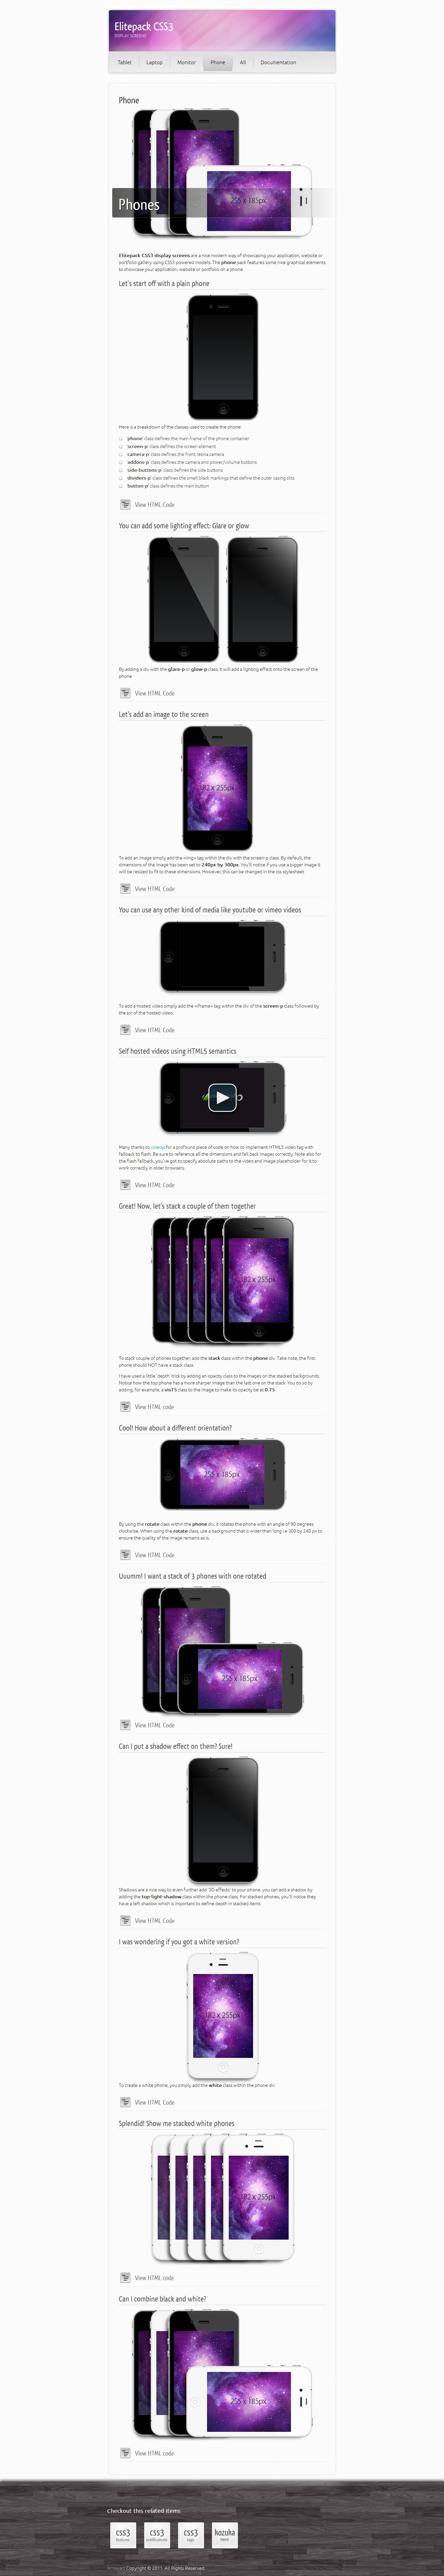 Elitepack CSS3 Display Screens - Screenshot 05 - Elitepack CSS3 Phones in Firefox 6